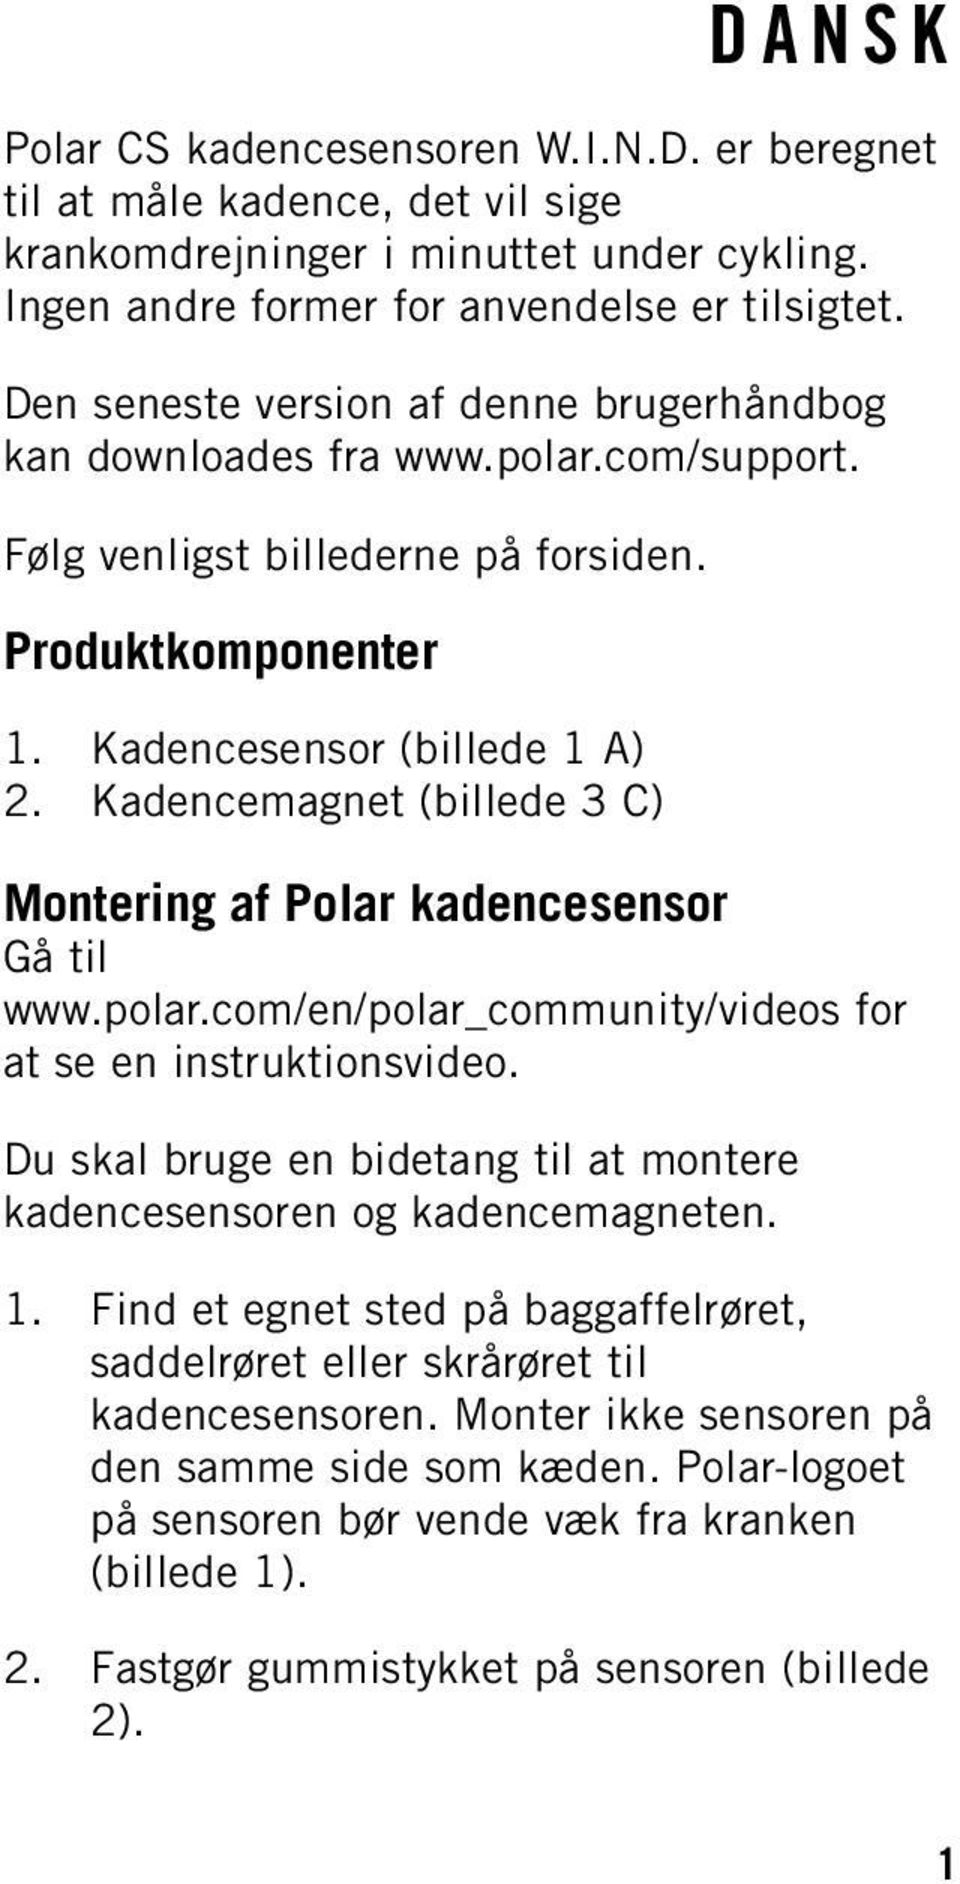 Kadencemagnet (billede 3 C) Montering af Polar kadencesensor Gå til www.polar.com/en/polar_community/videos for at se en instruktionsvideo.